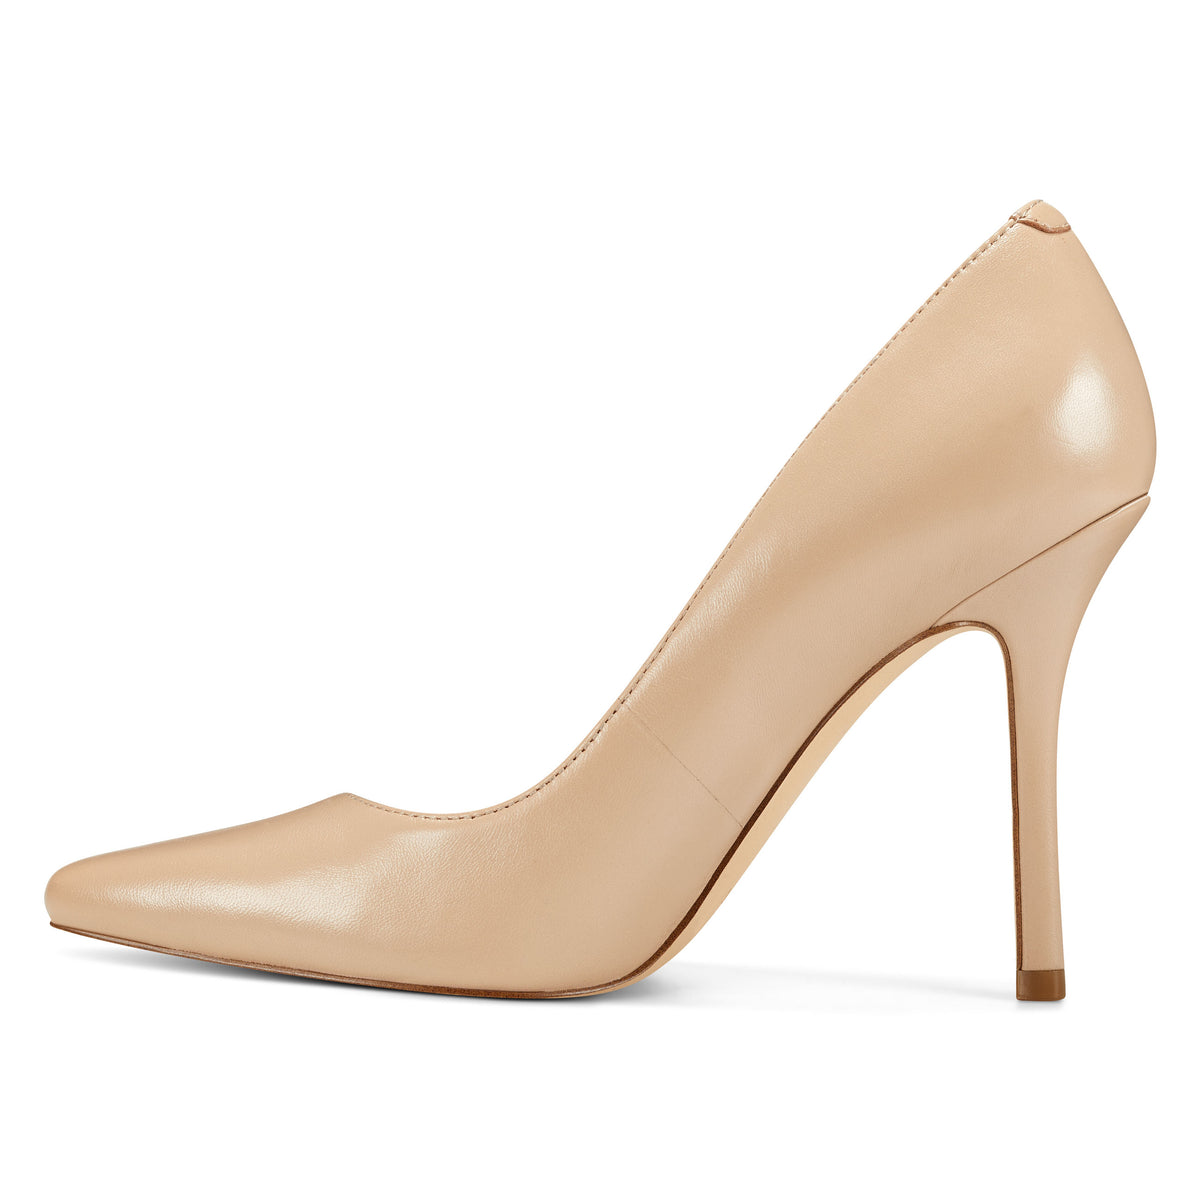 arley-square-toe-pumps-in-natural-leather